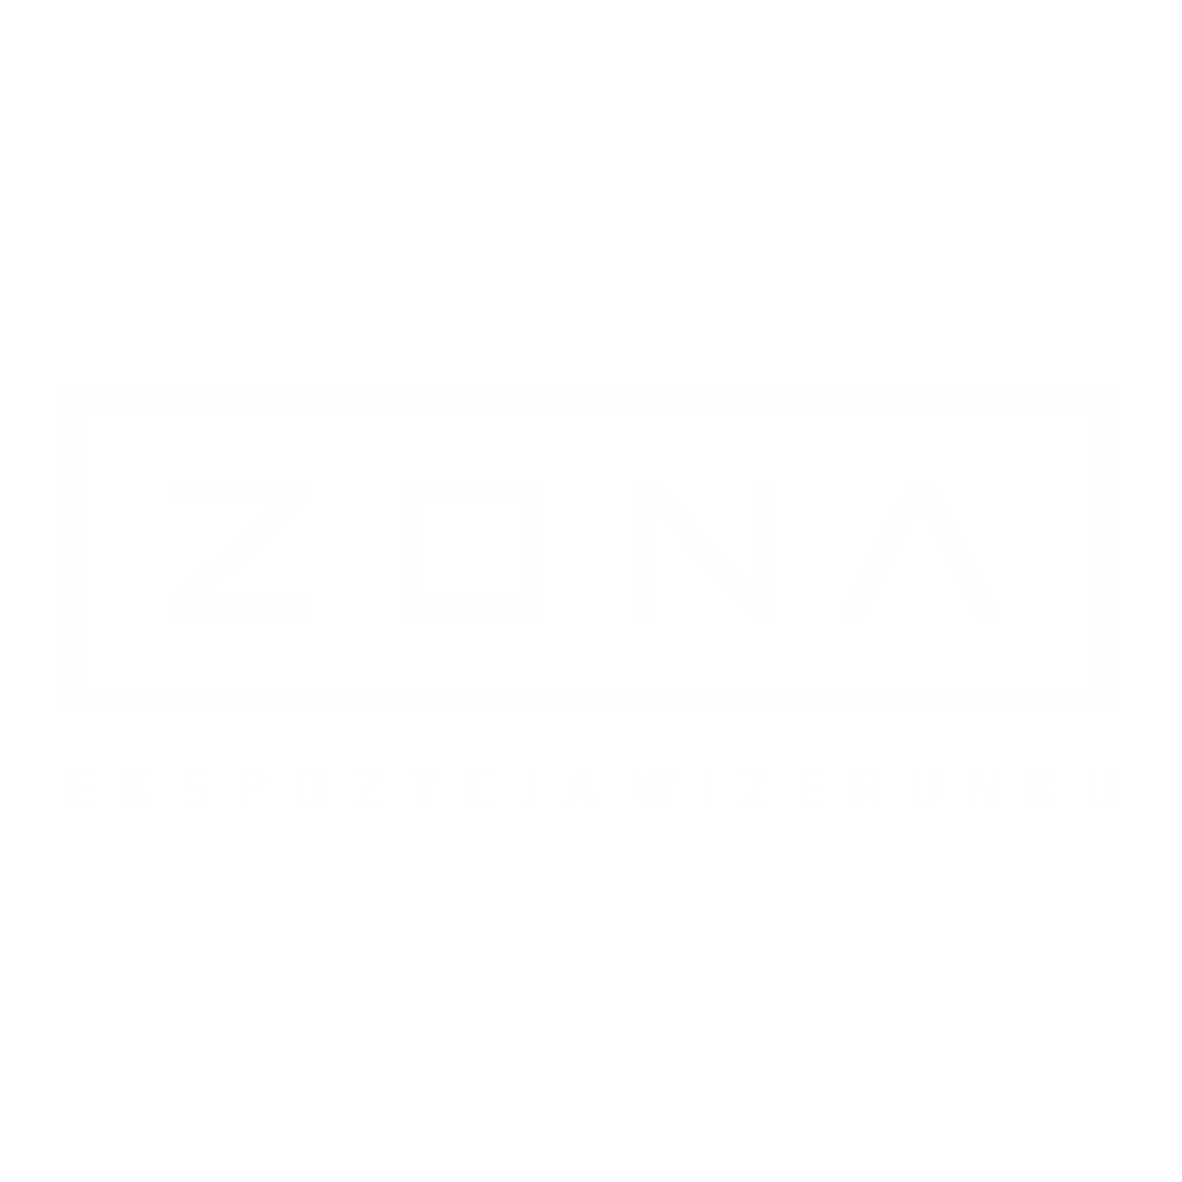 zona.png